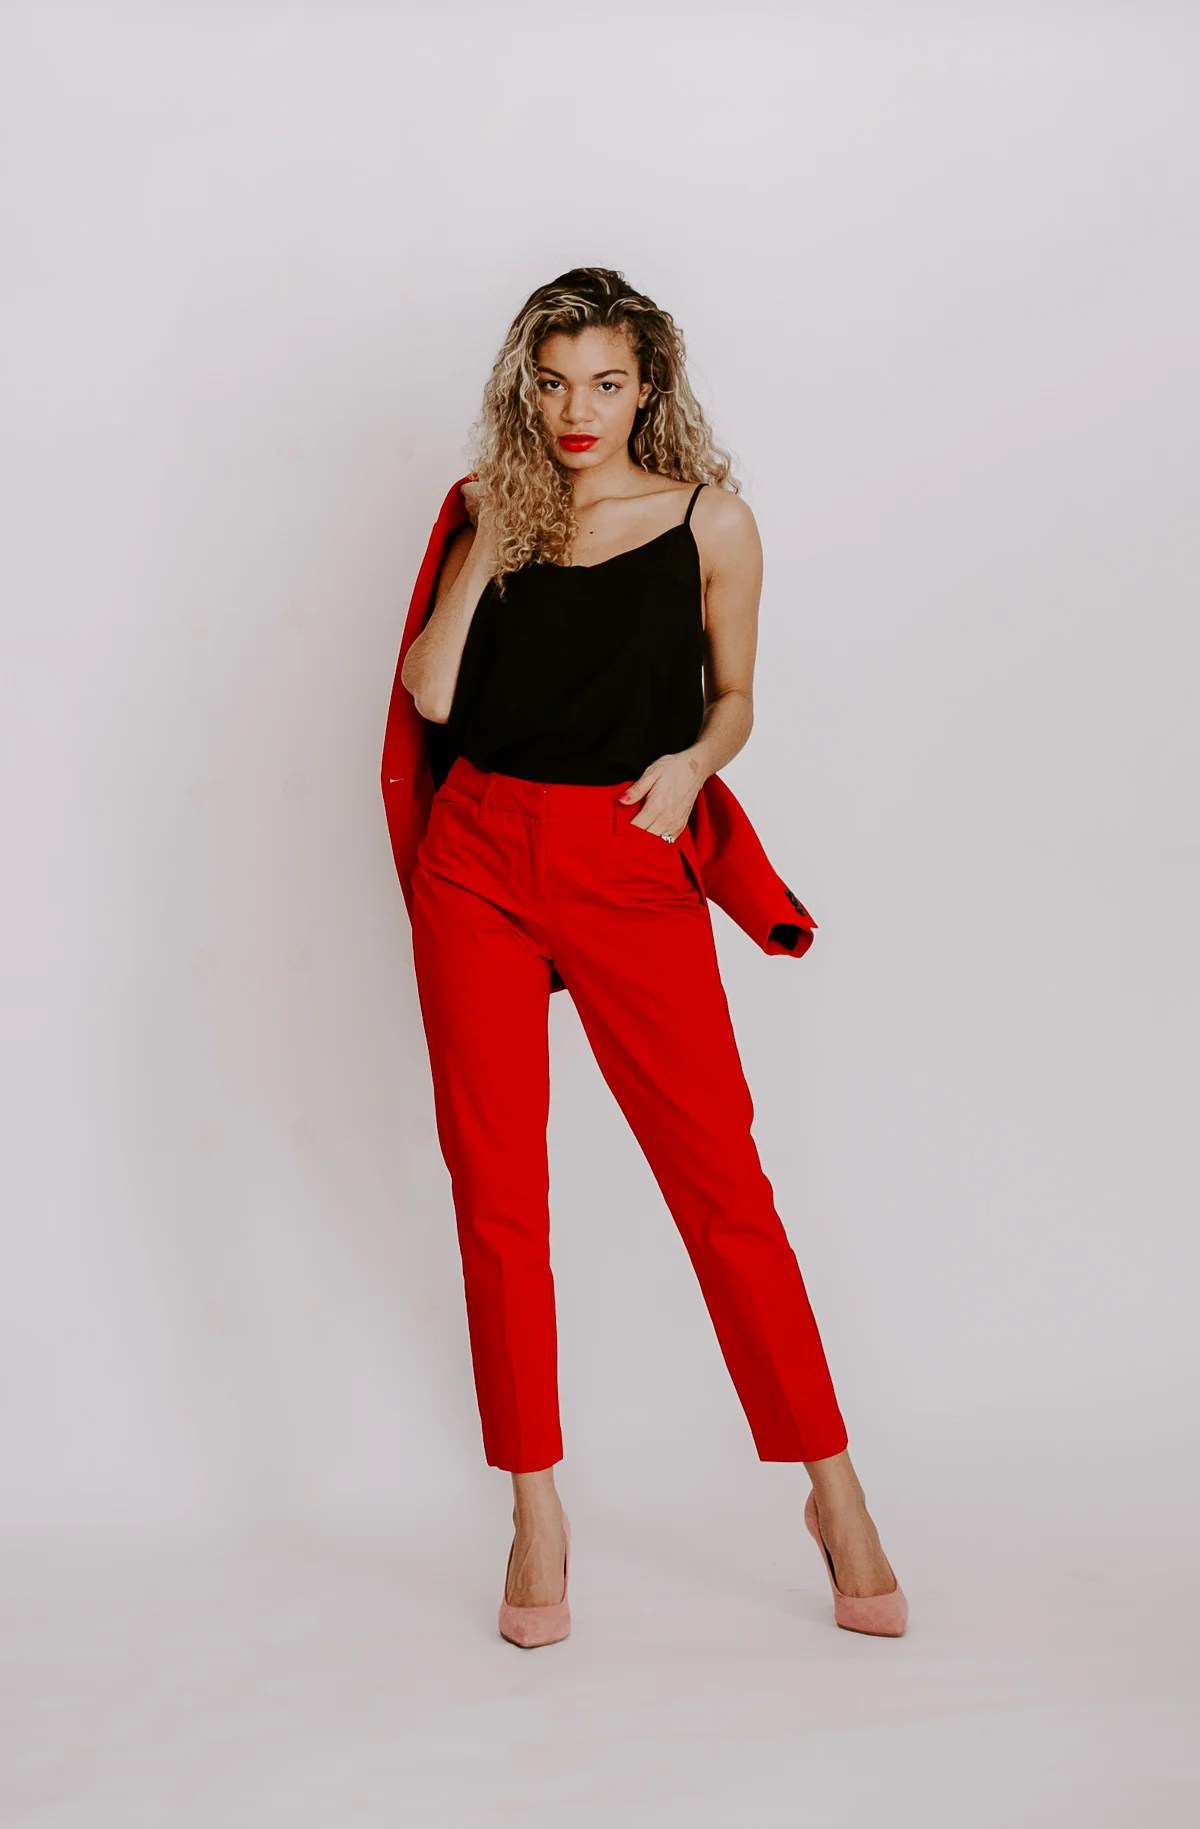 Red and pink outfits that are perfect for Valentine's Day or wearing them for spring. These colors together are great spring outfit ideas too! This red suit set is also trending.